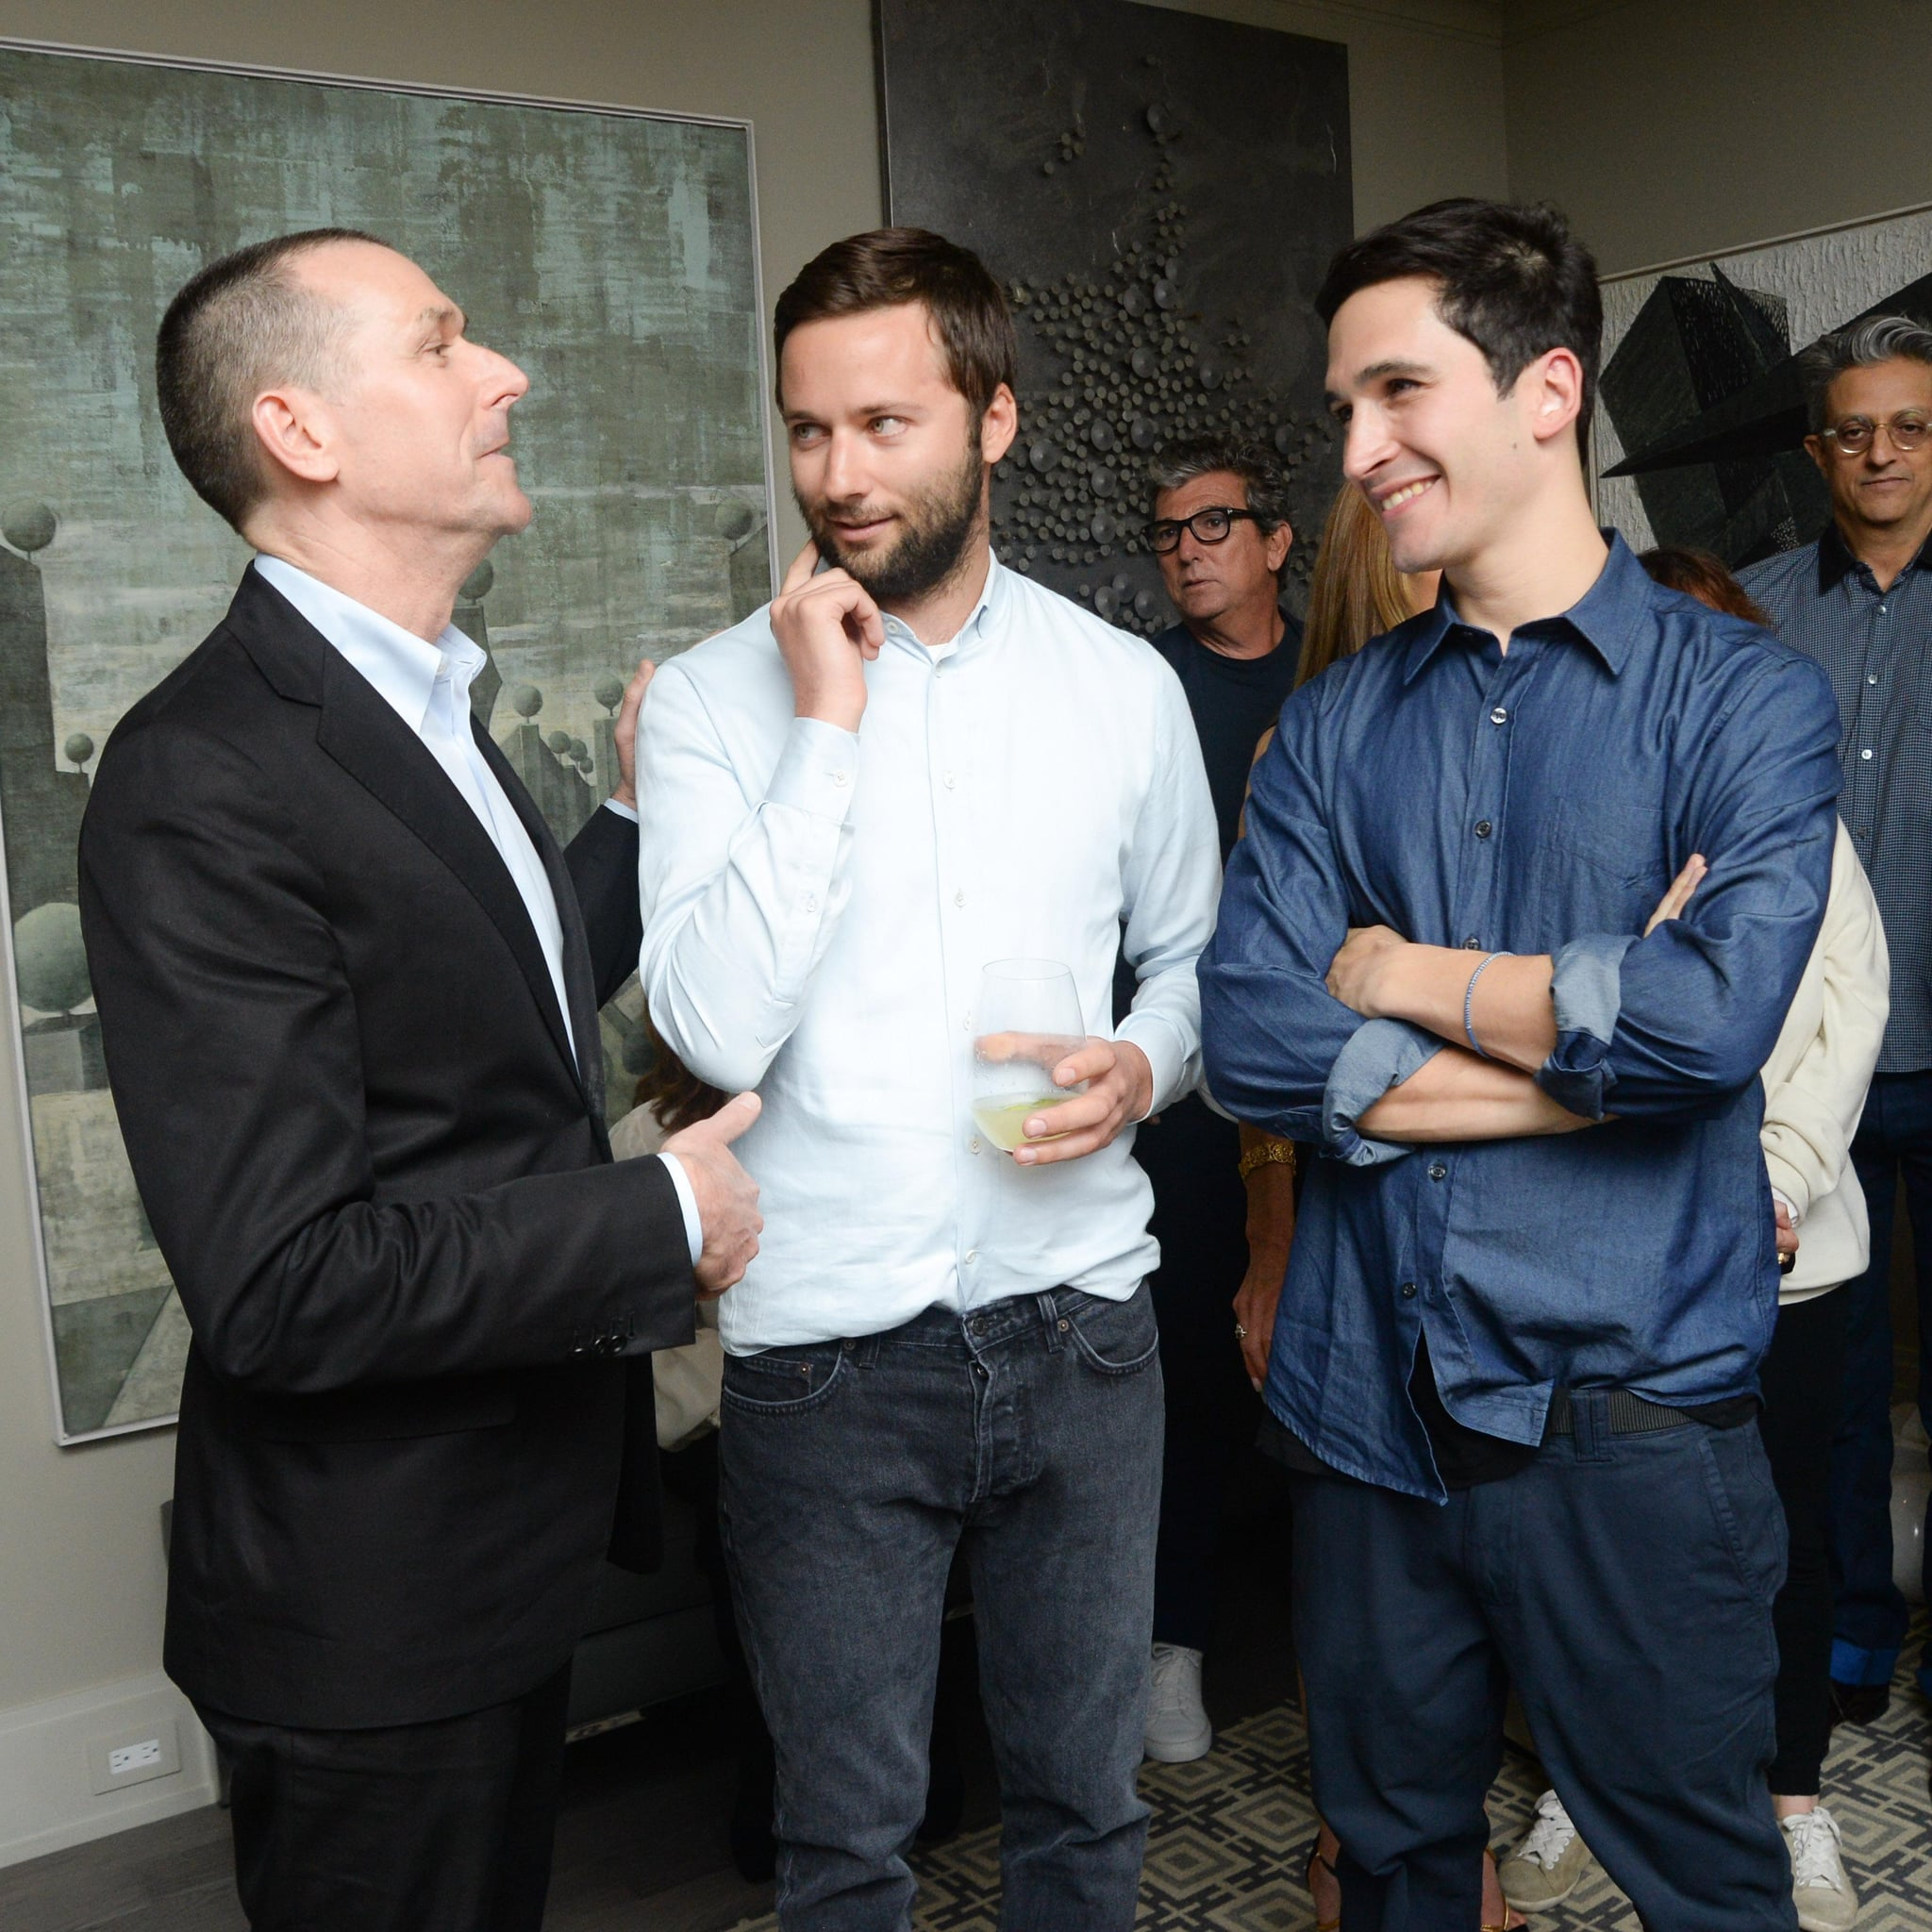 Barneys CEO Mark Lee and Proenza Schouler's Jack McCollough and Lazaro Hernandez at a party celebrating their First Collection capsule in New York. Source: Joe Schildhorn/BFAnyc.com